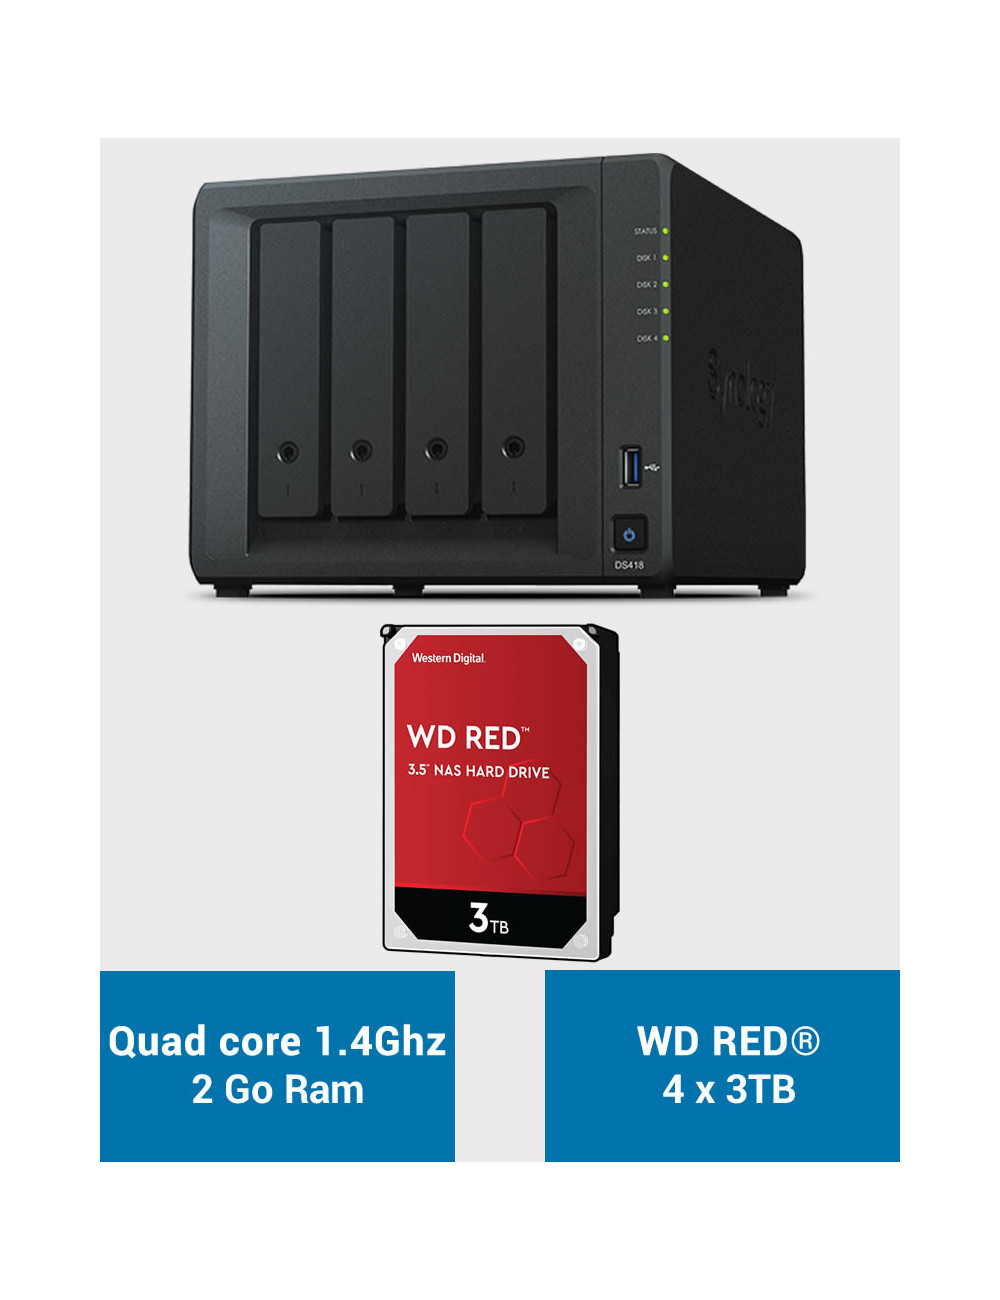 Synology DS418 NAS Server WD RED 12TB (4x3TB)